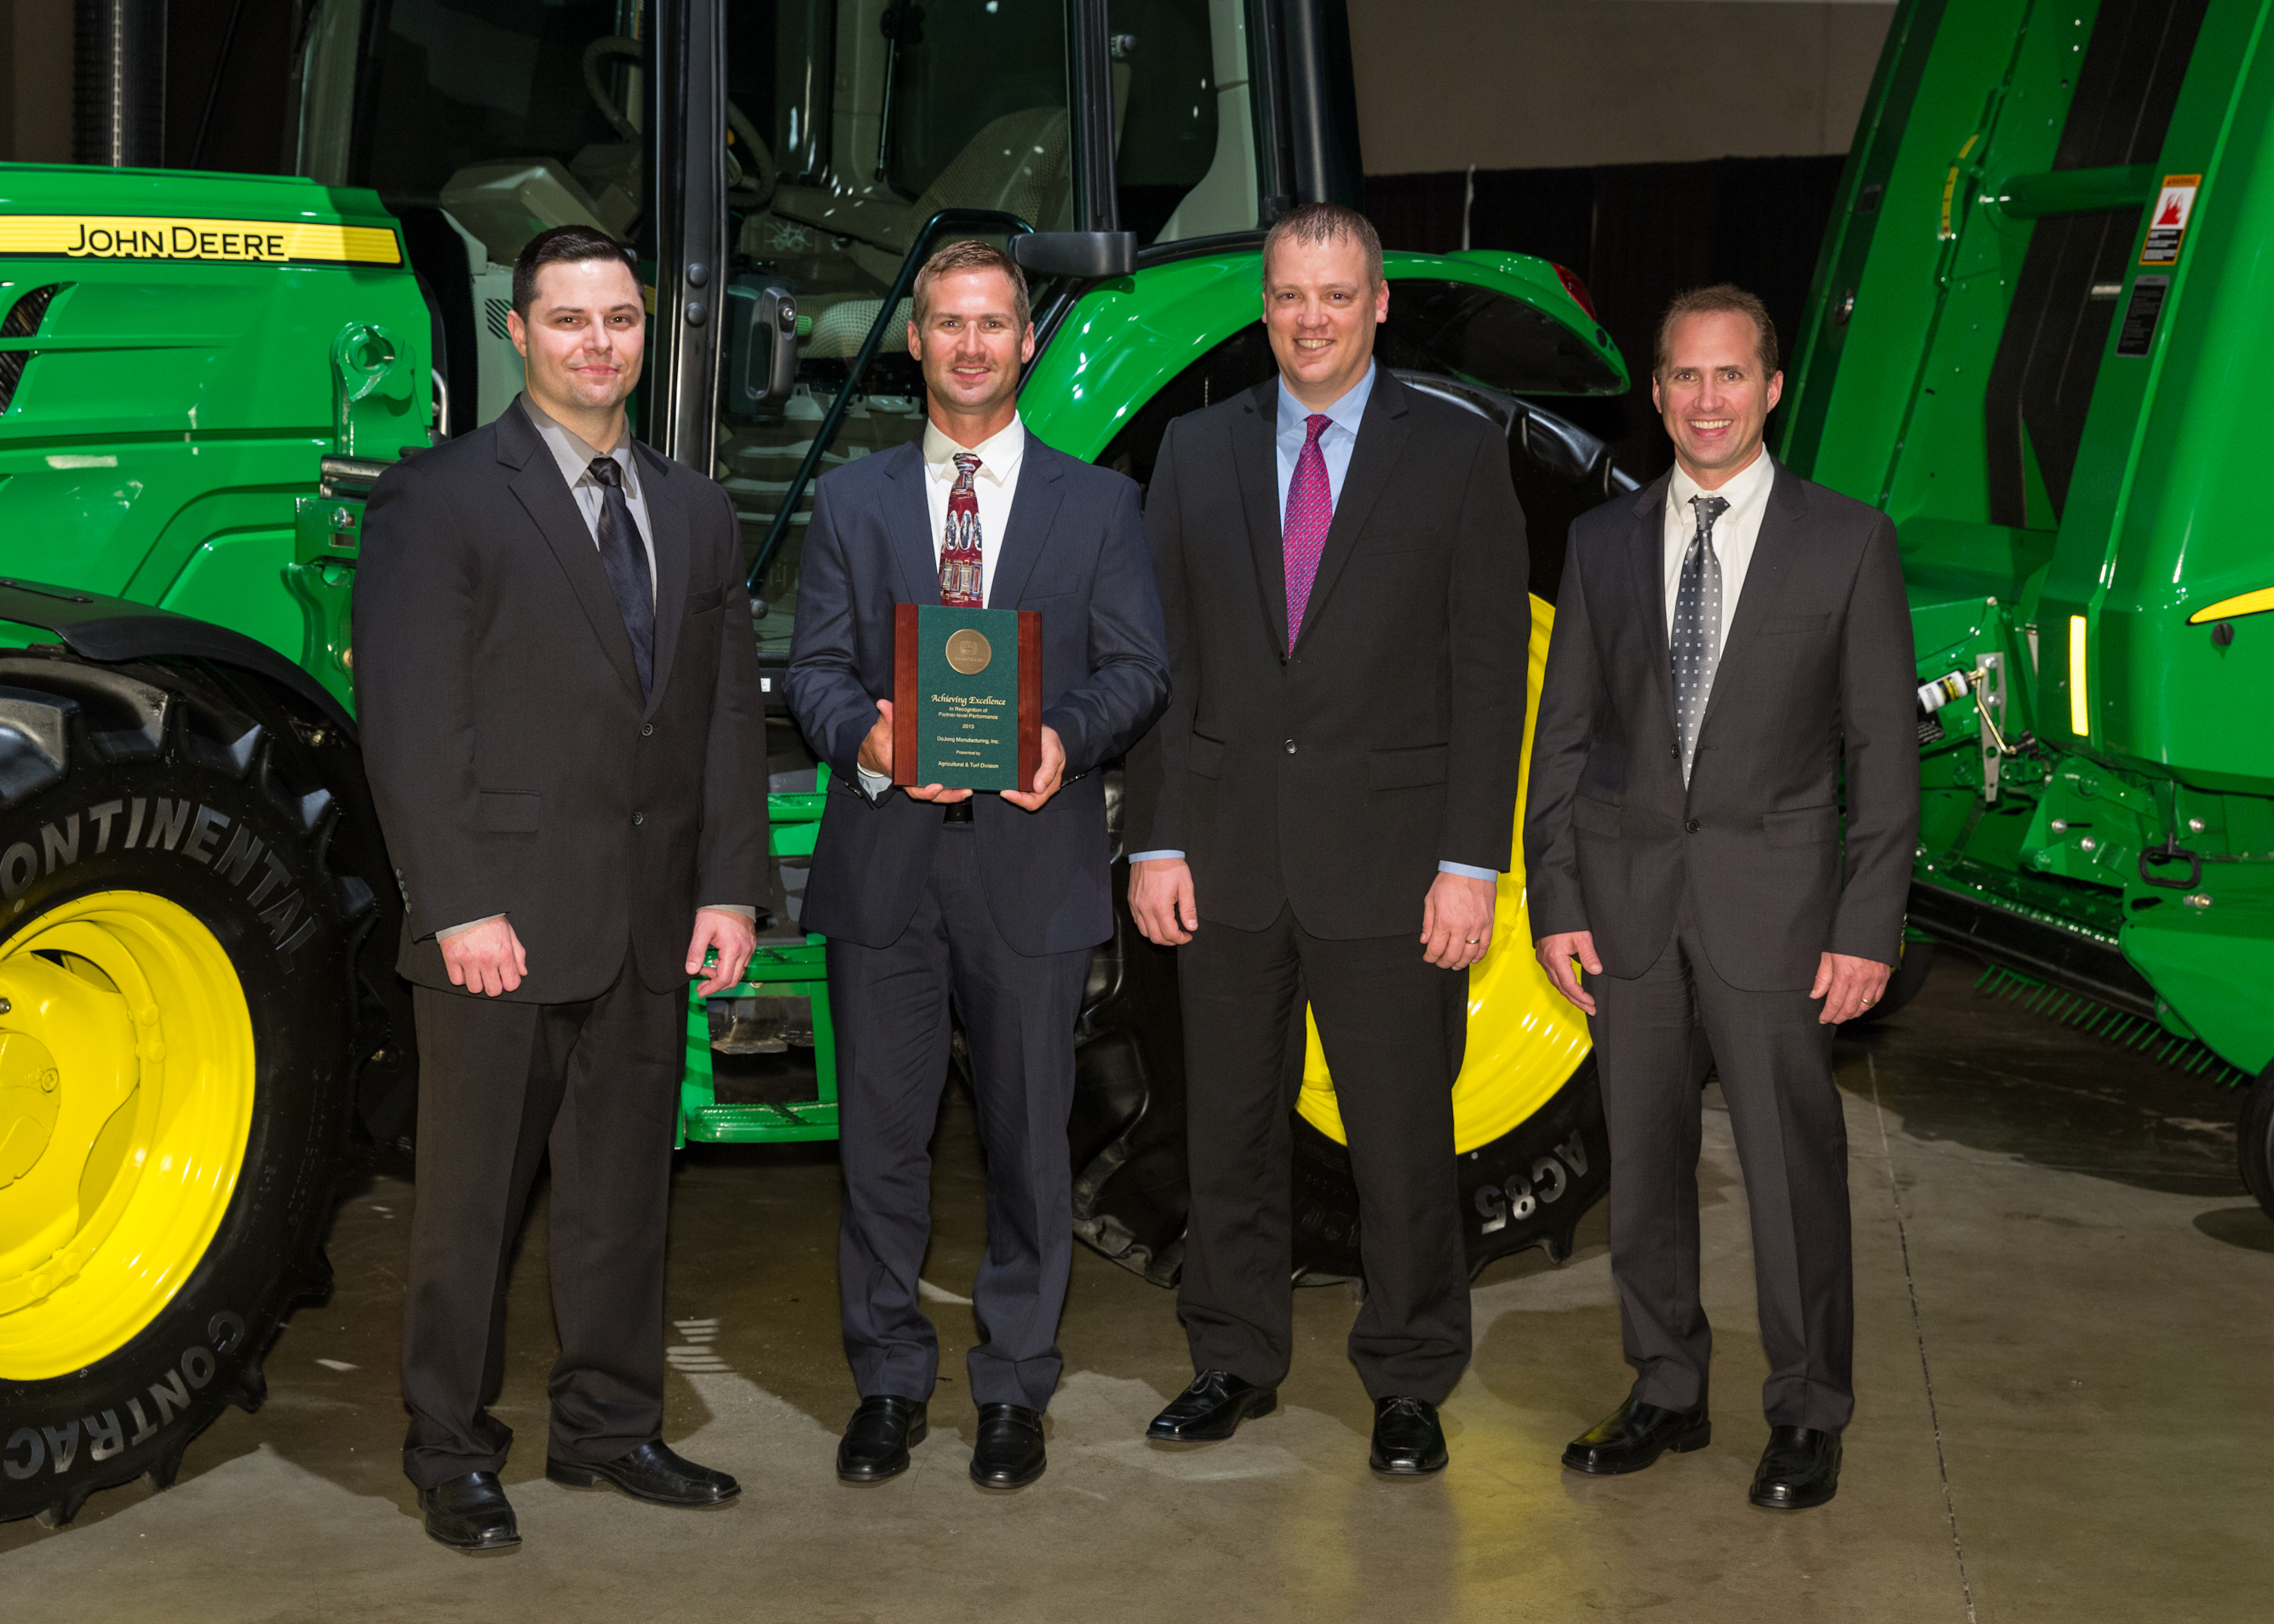 John Deere 2013 Partner Award